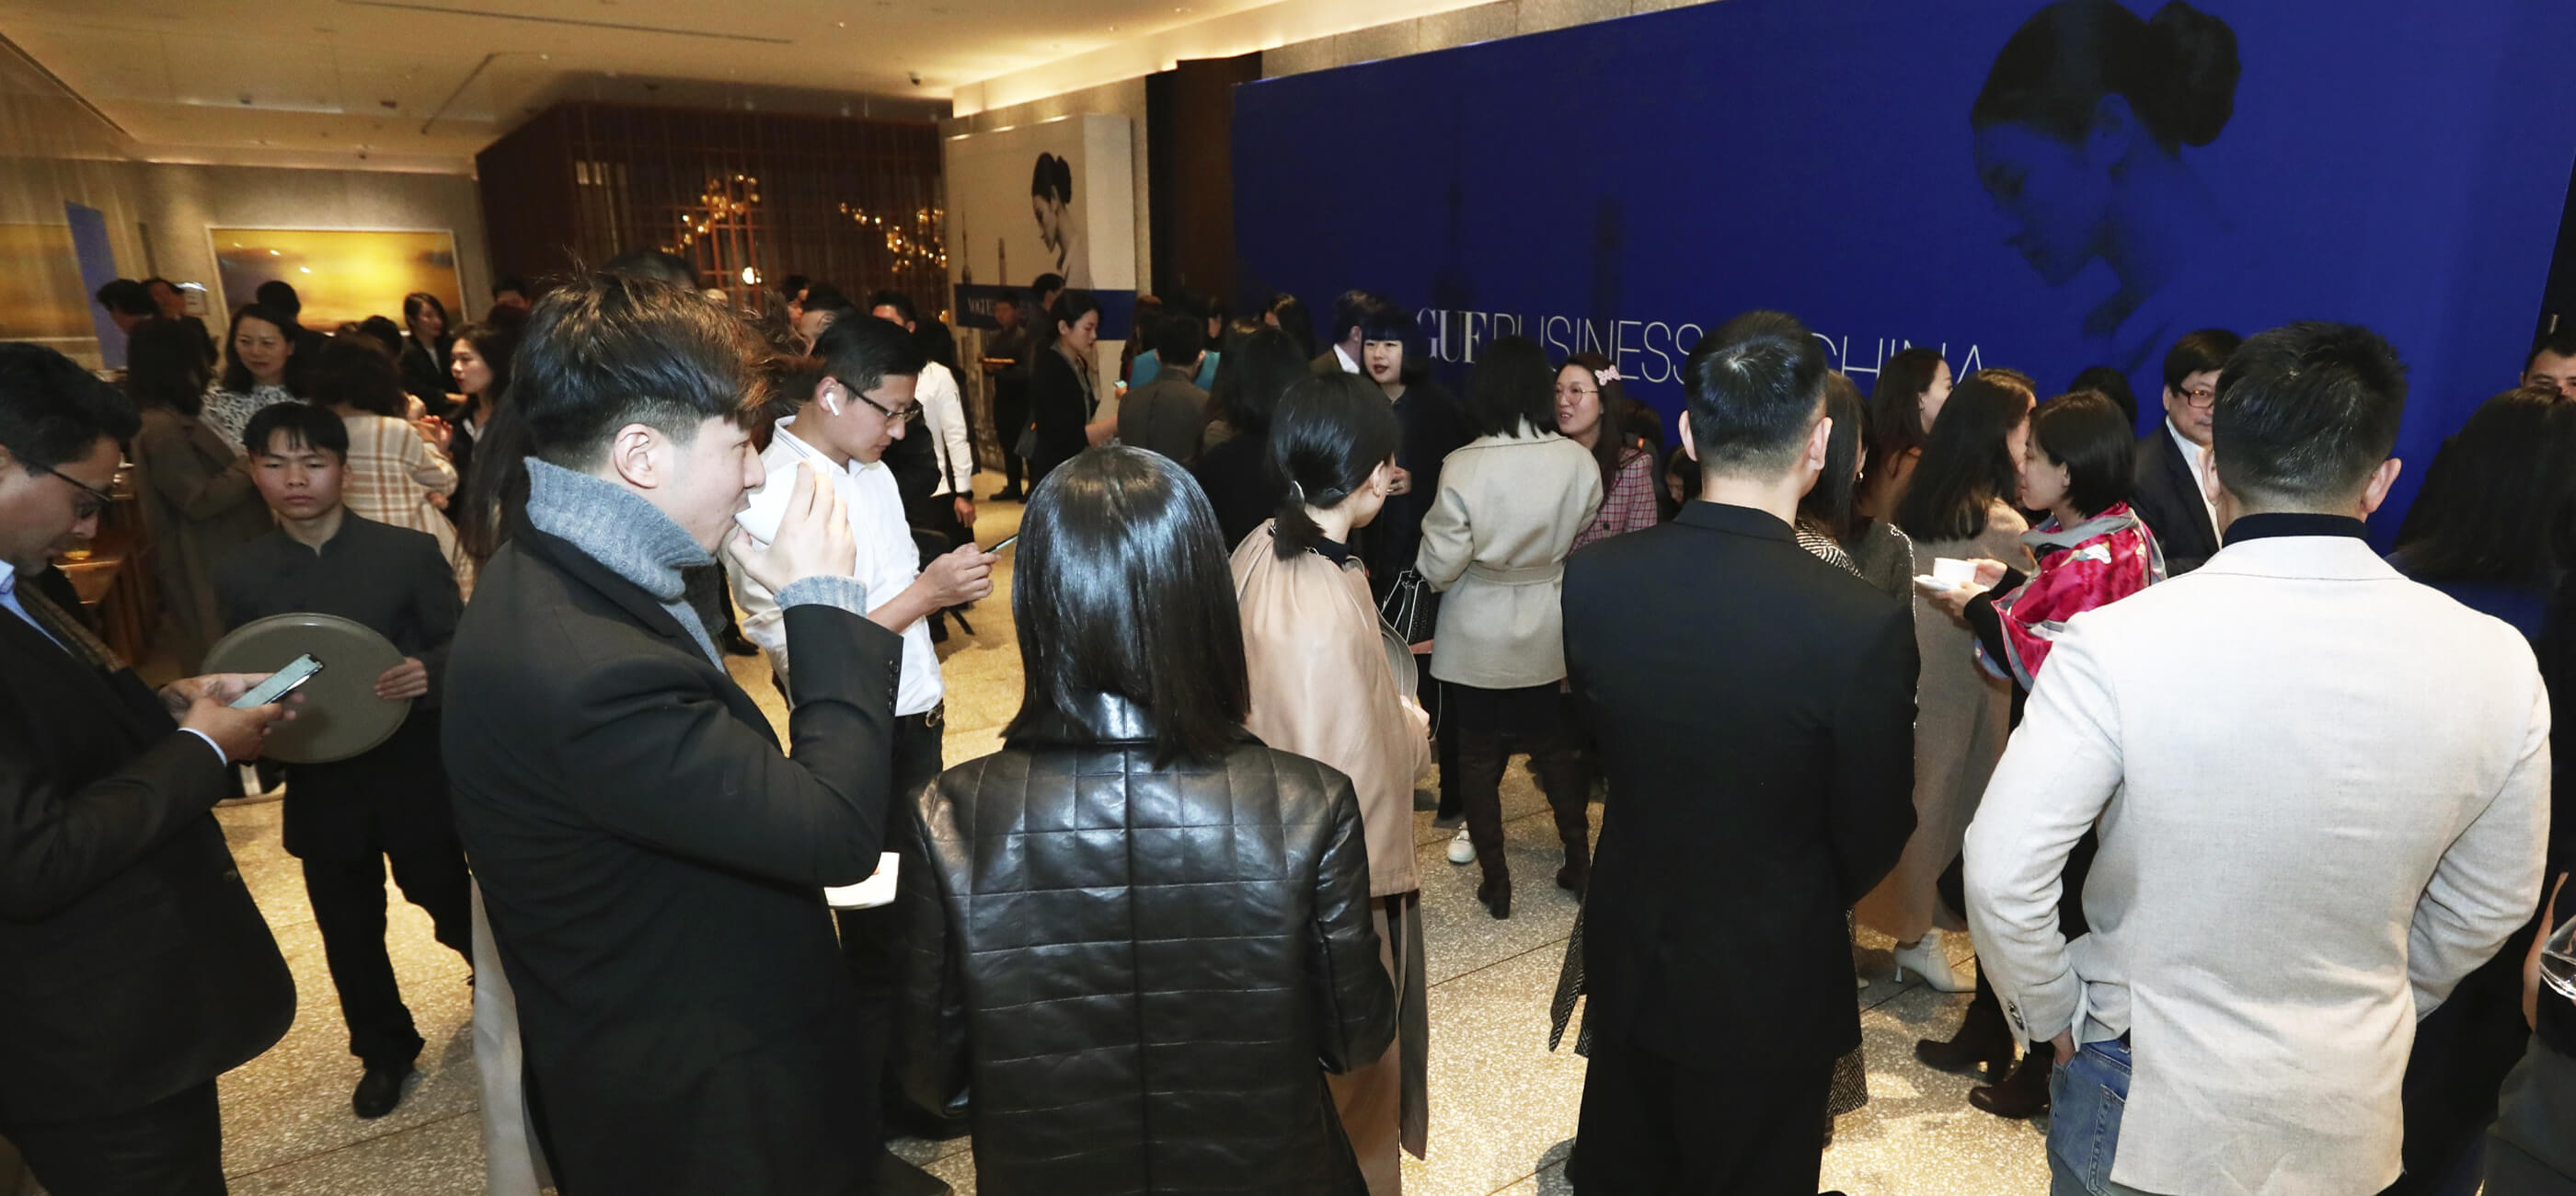 This image may contain: vogue business,  photograph, digital, vogue business in china, people, event, gathering, networking